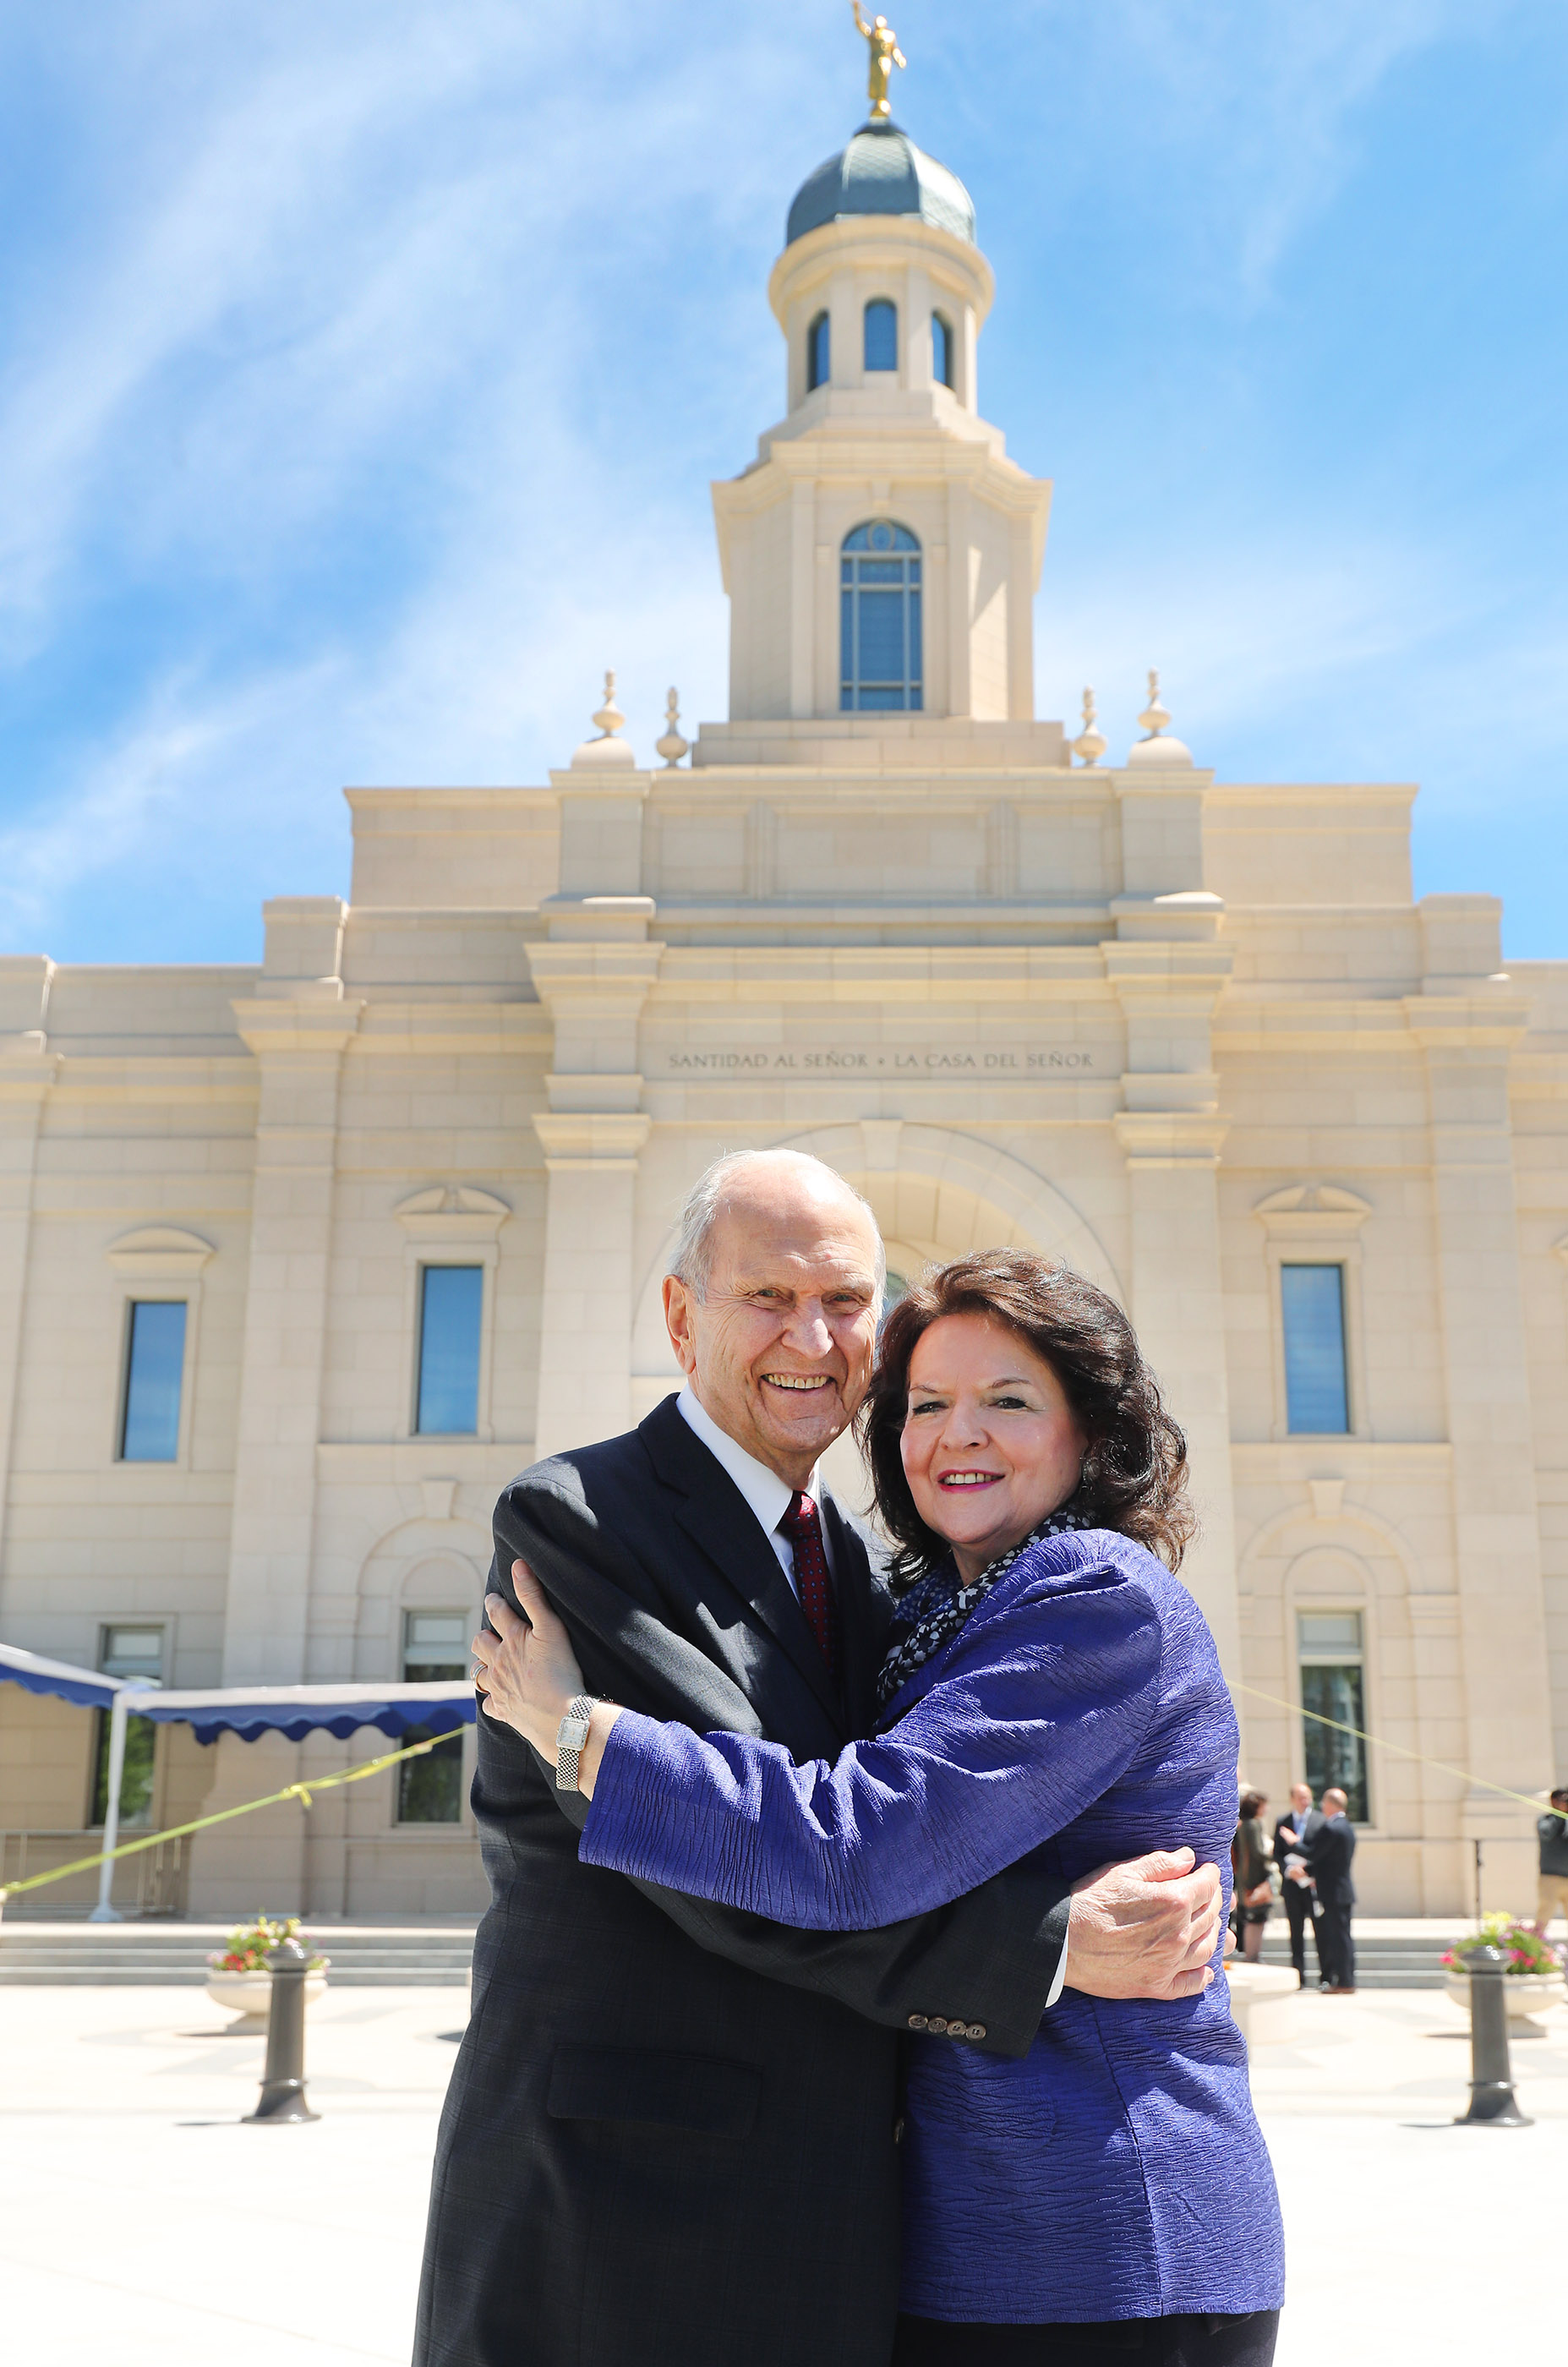 President Russell M. Nelson of The Church of Jesus Christ of Latter-day Saints and his wife Sister Wendy Nelson hug near the temple in Concepcion, Chili on Saturday, Oct. 27, 2018.